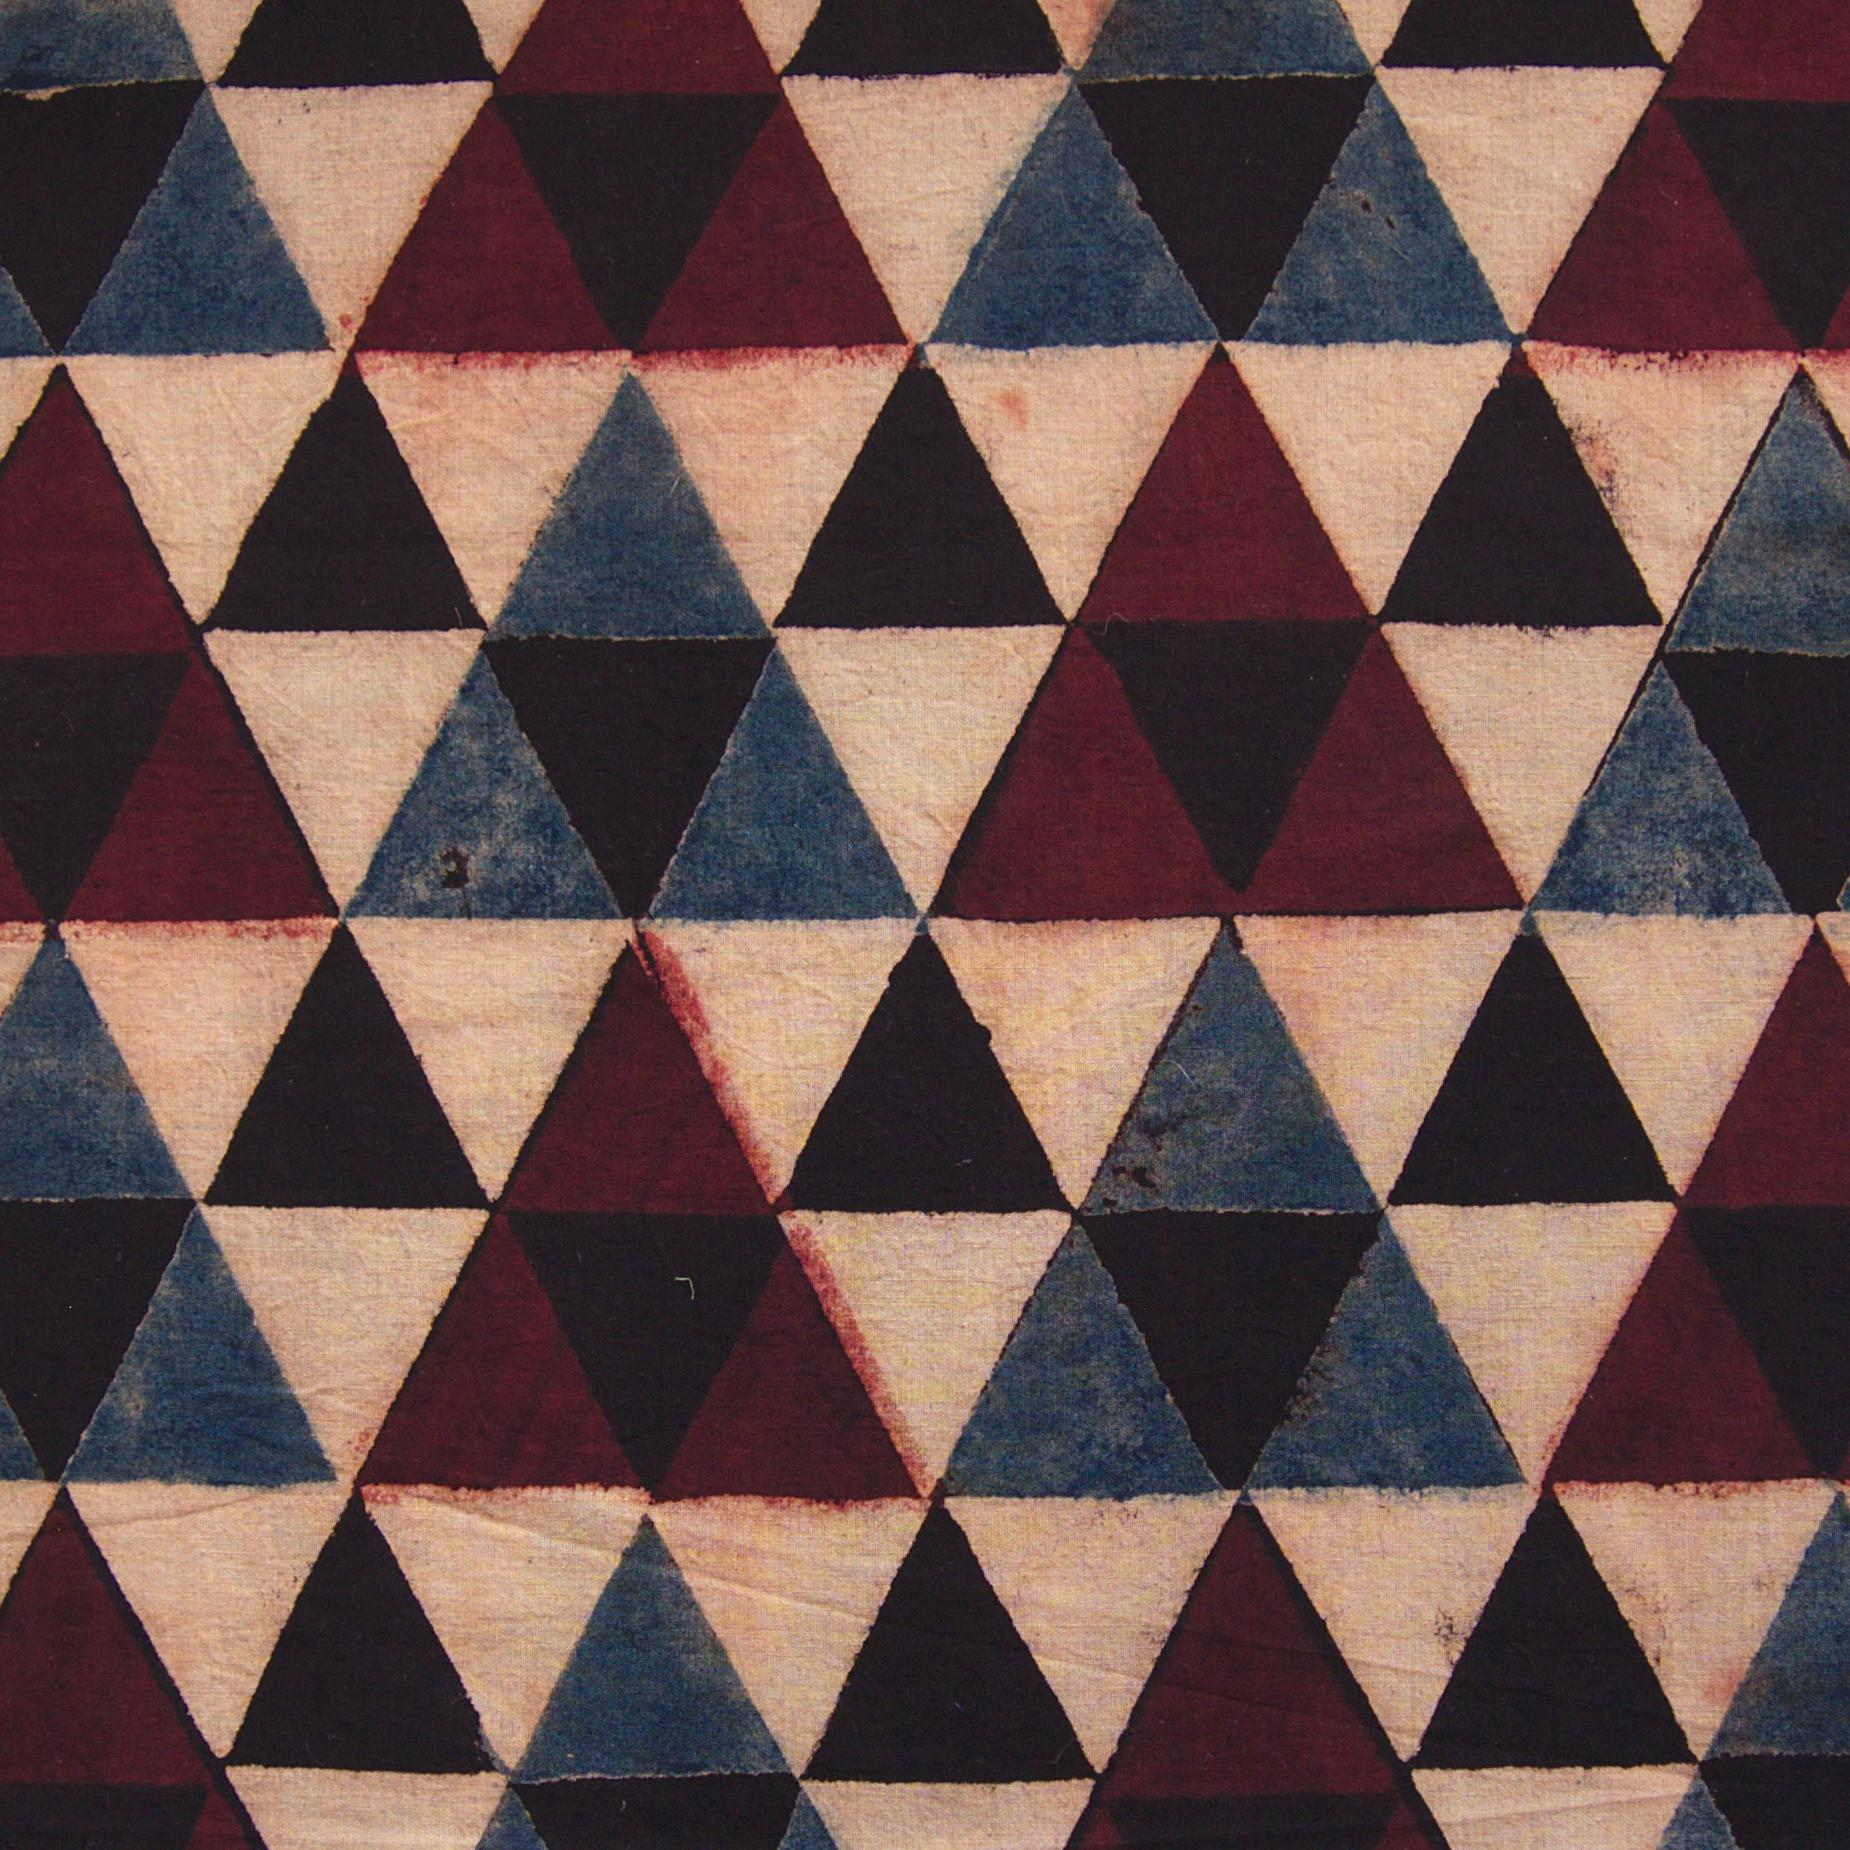 Block Printed Fabric, 100% Cotton, Ajrak Design: Beige Base, Small Black Triangle, Big Red, Blue Triangle. Close Up